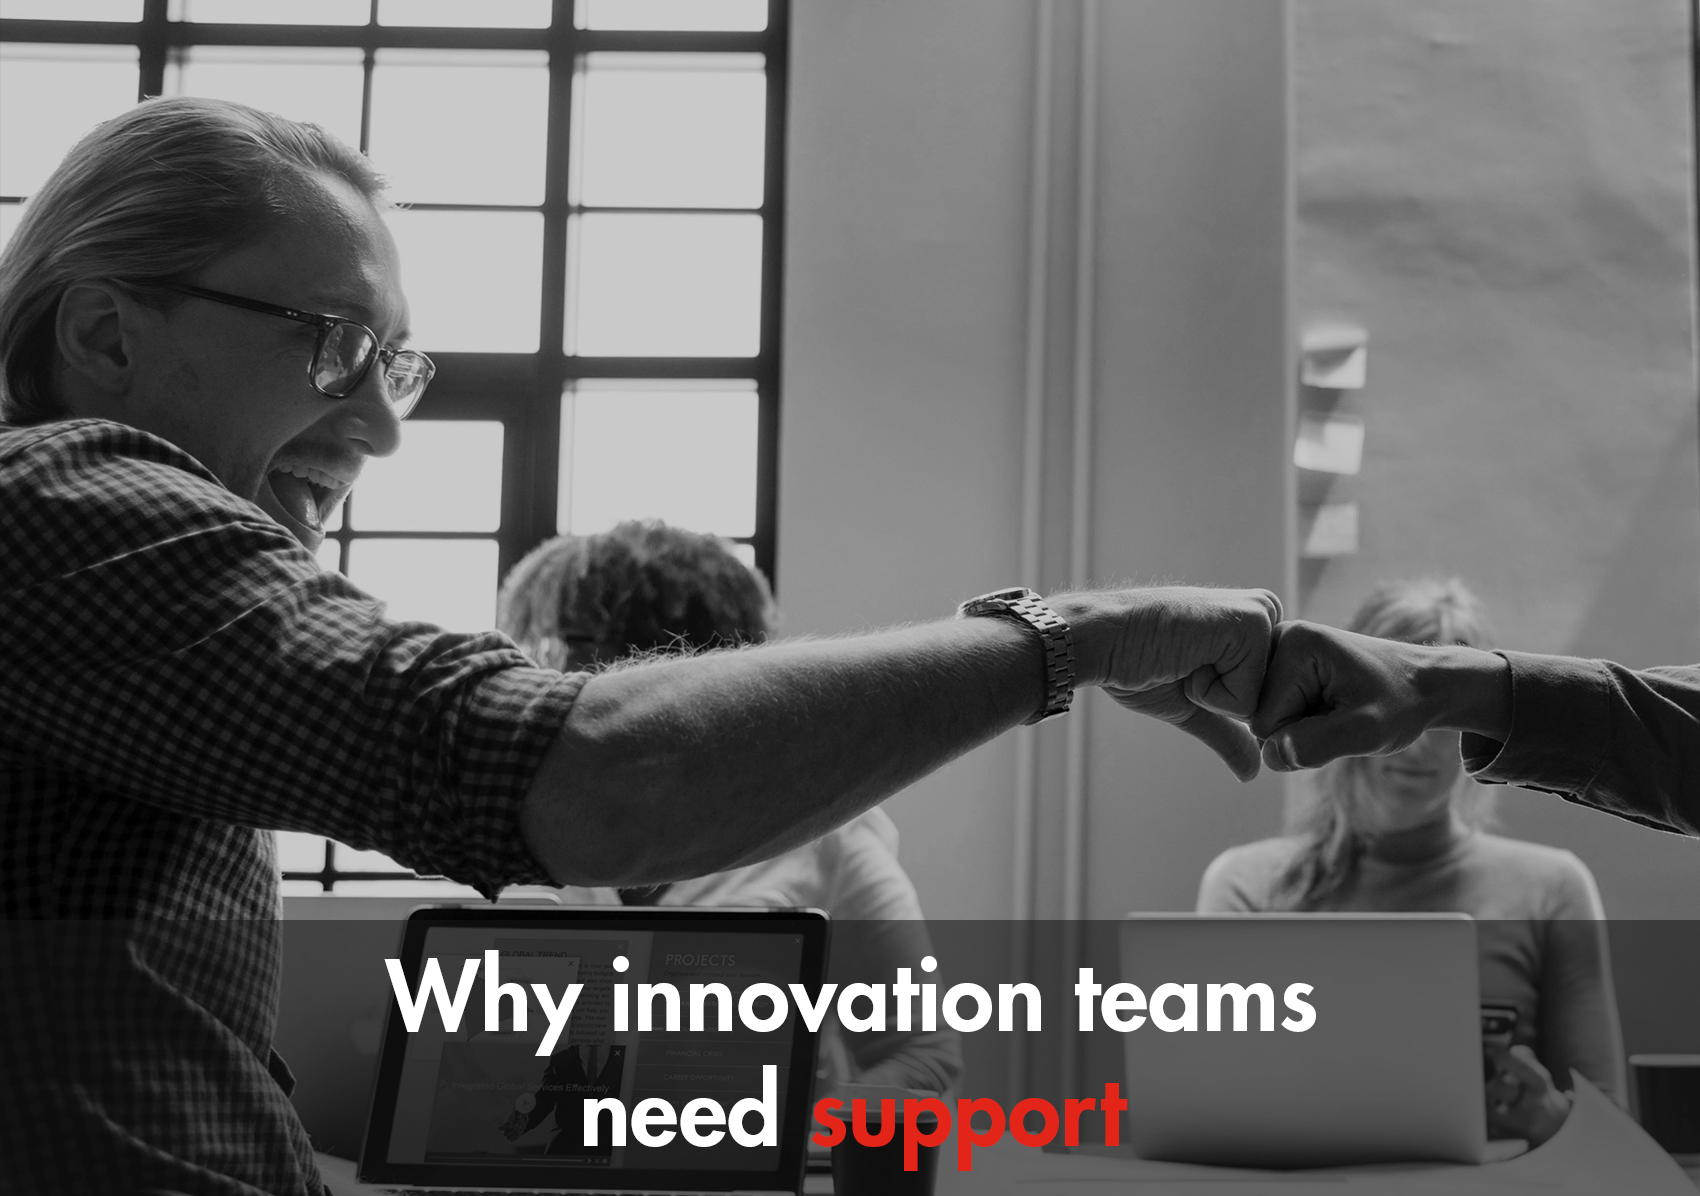 WHY INNOVATION TEAMS NEED SUPPORT